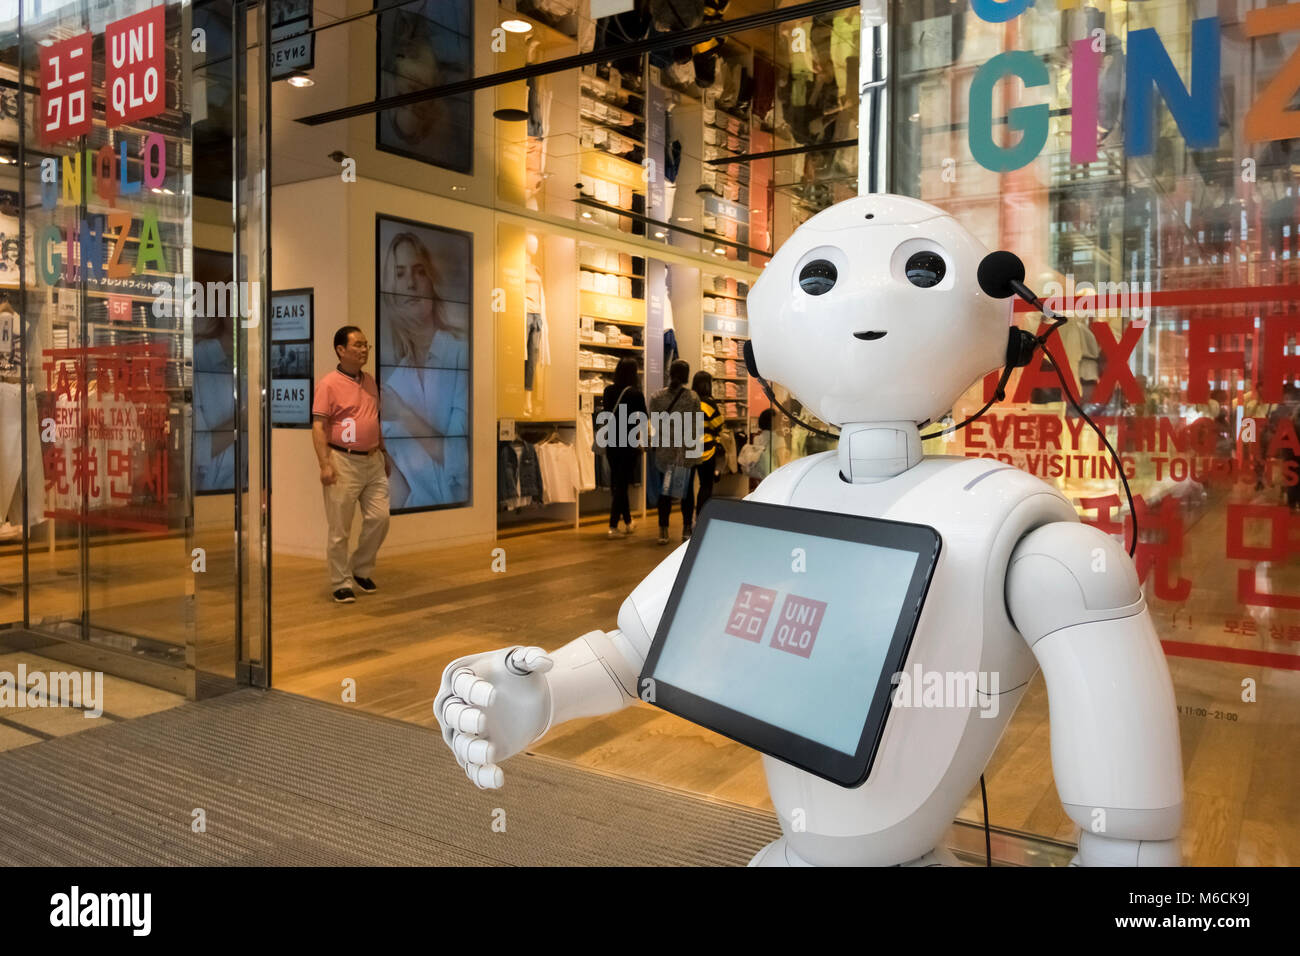 a robot welcomes shoppers to the flagship uniqlo store in ginza tokyo japan